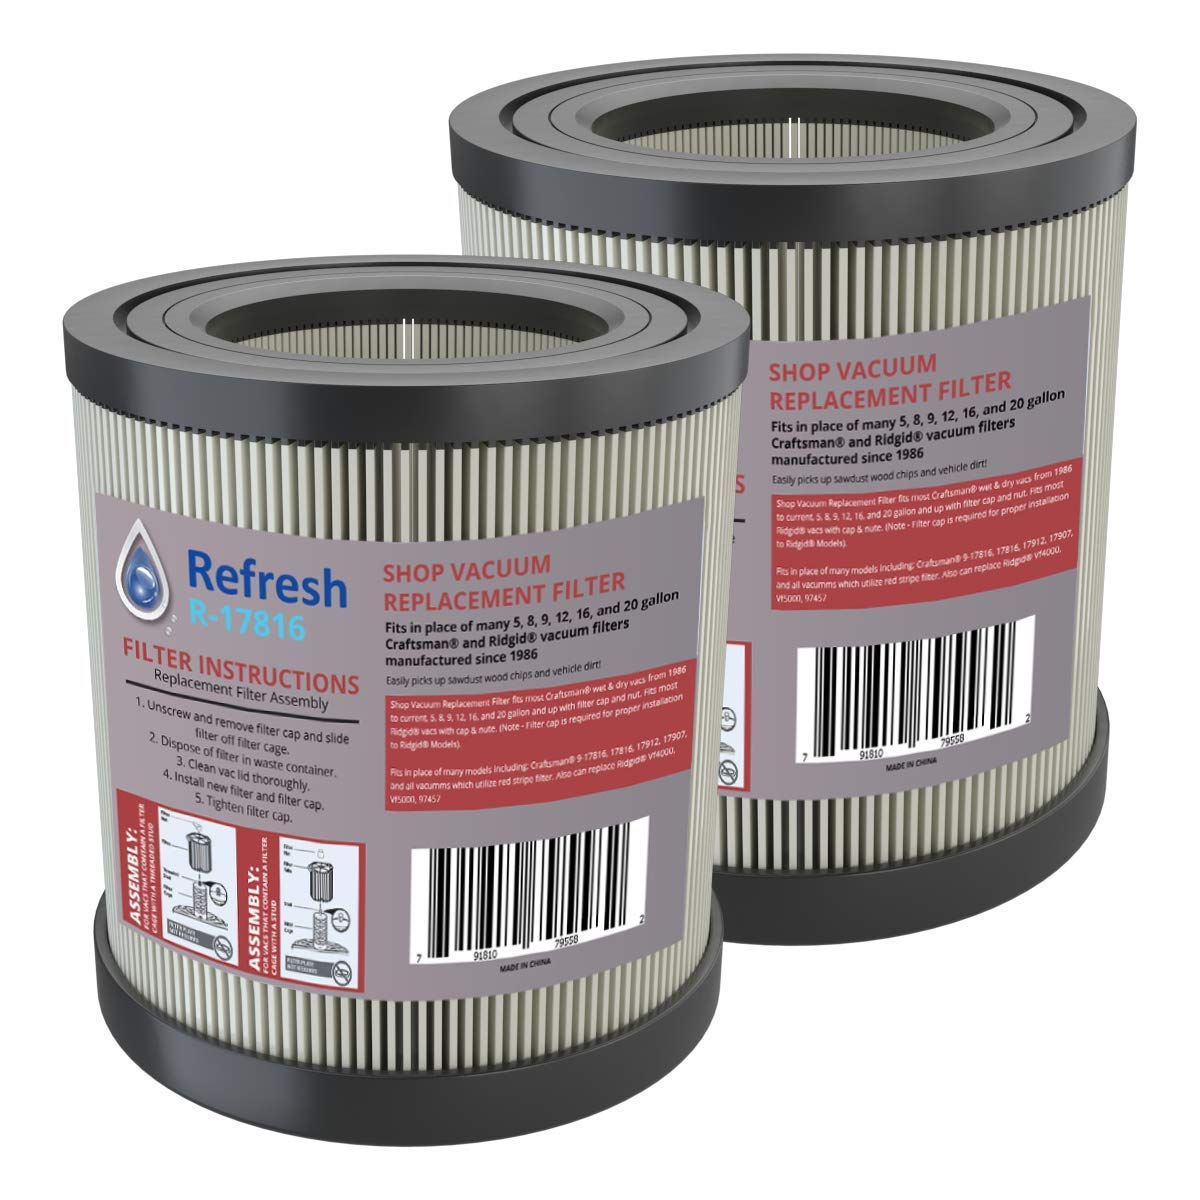 Refresh Compatible Wet/Dry Shop Vac Air Filter Replacement for - R17816 - Craftsman 17816 / Ridgid VF4000, VF4200 (2-Pack)